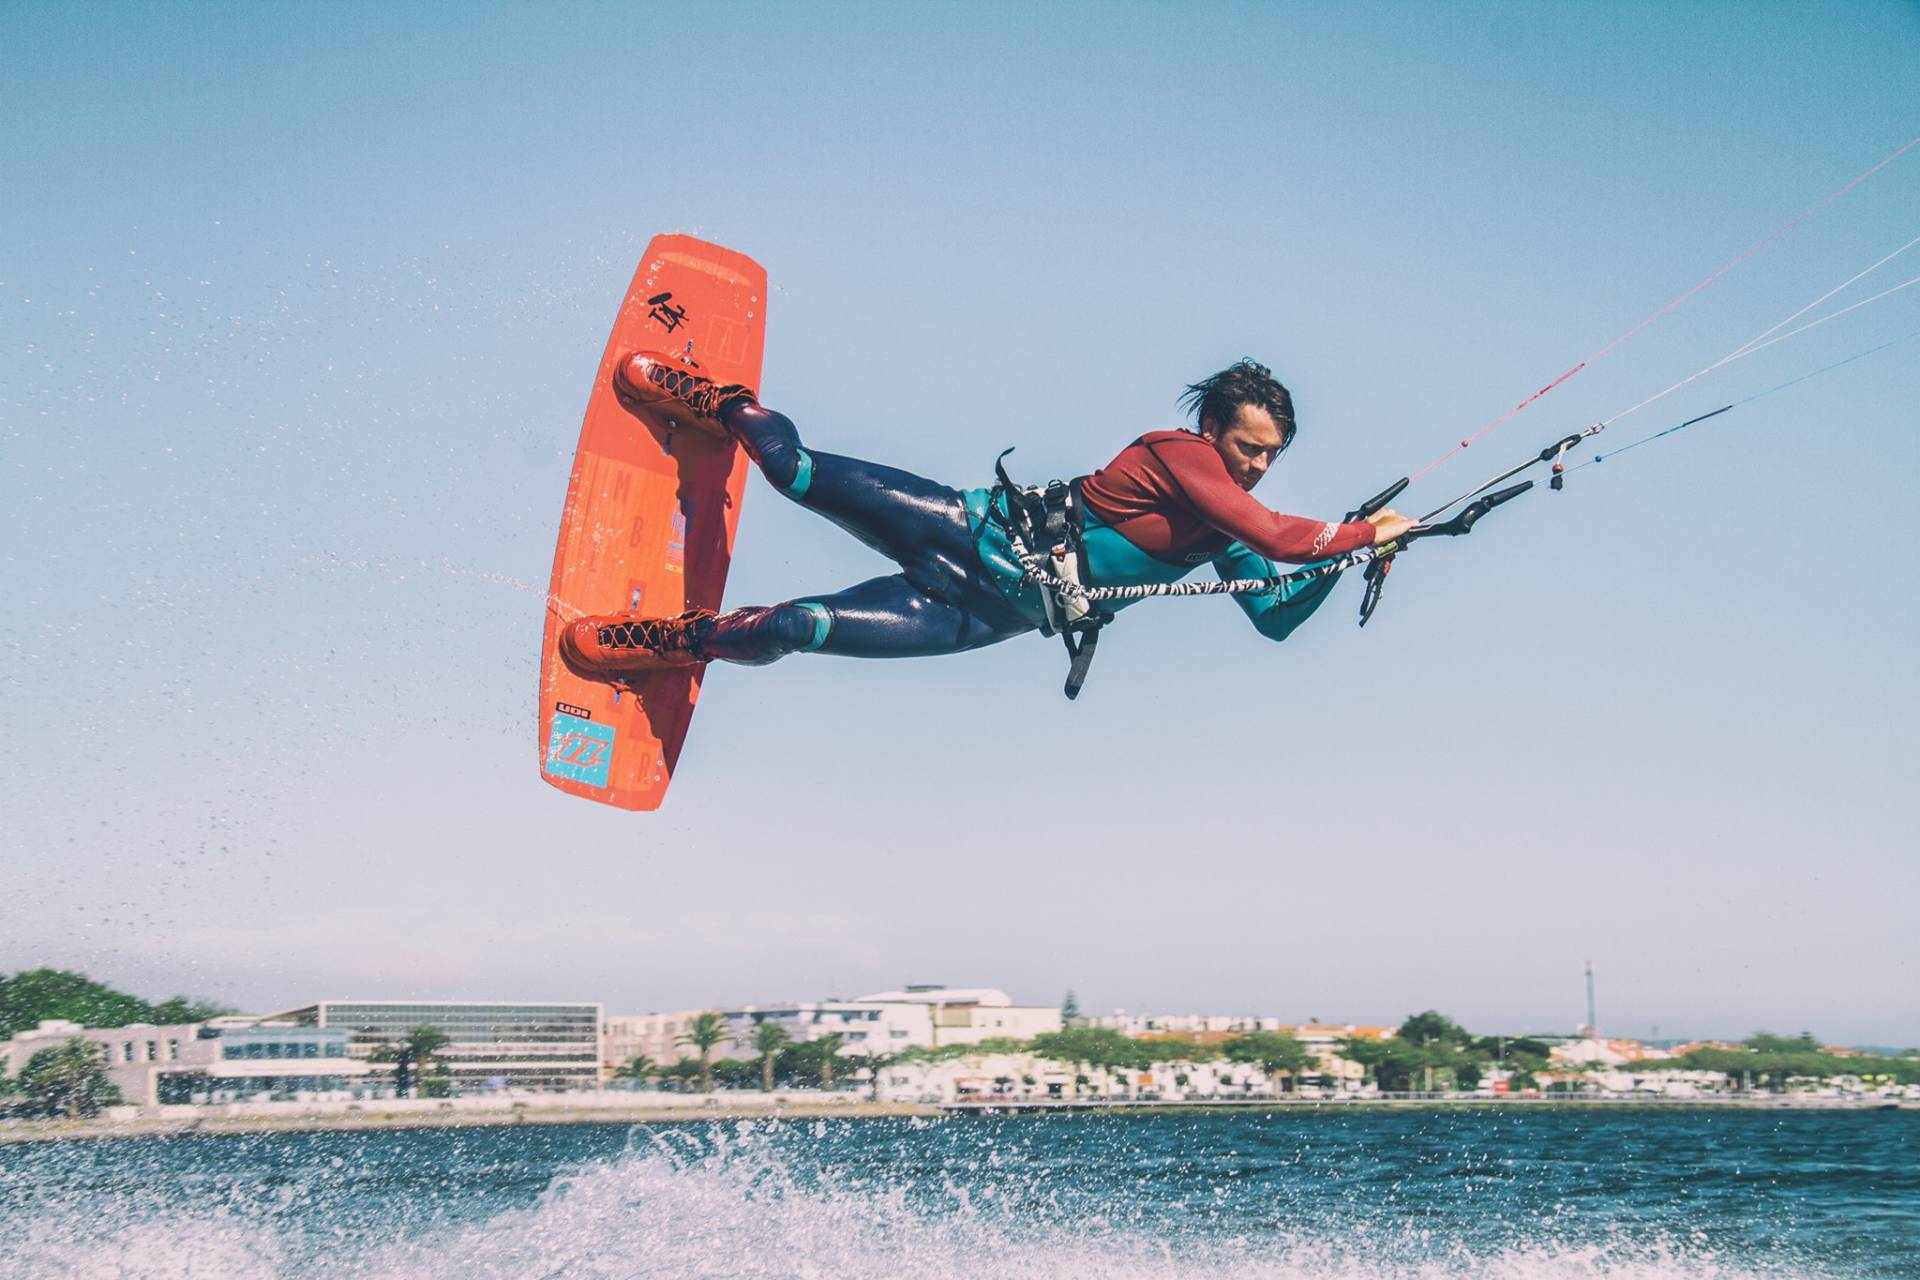 Pierre antoine One Launch Kiteboarding